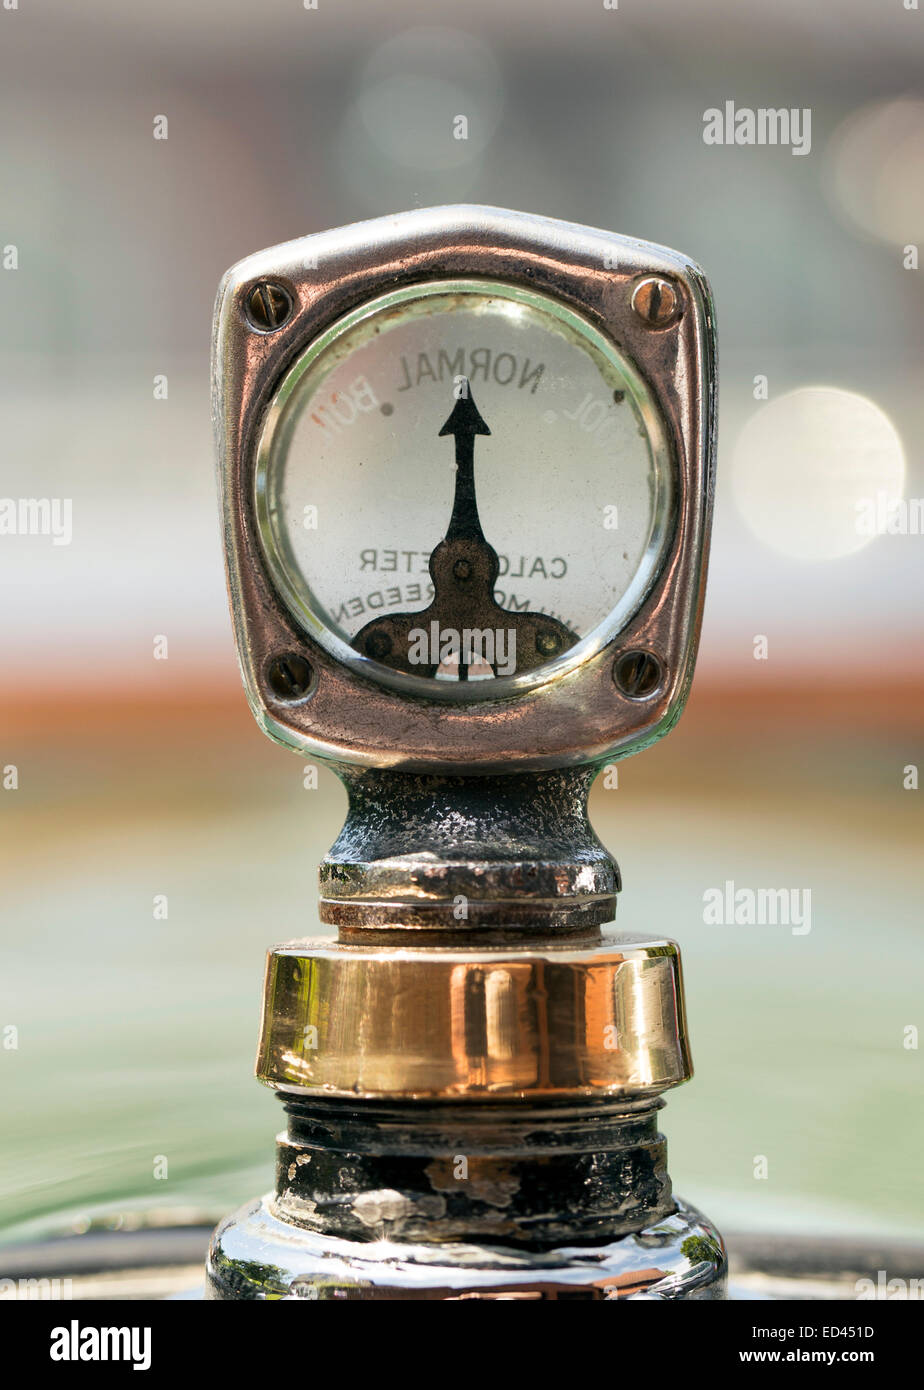 Austin 7 temperature guage - Stock Image